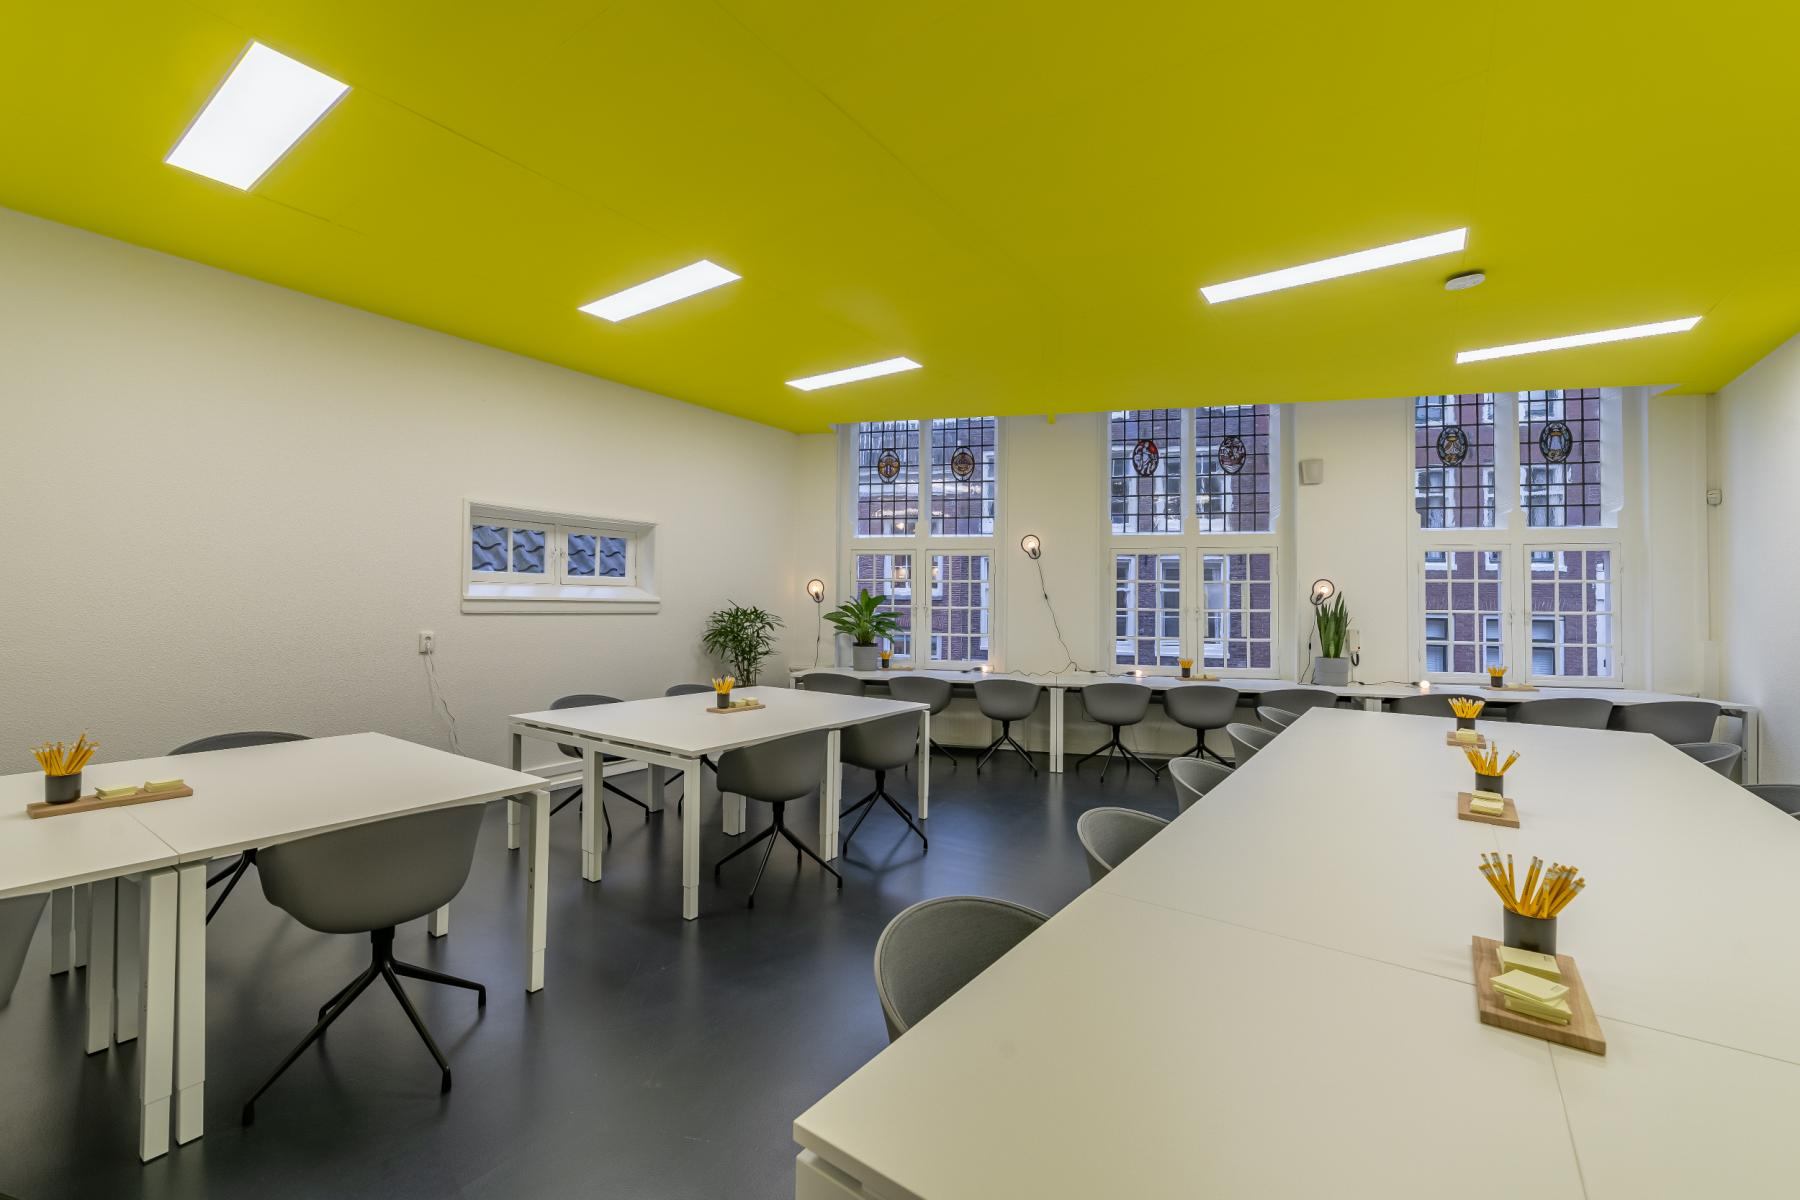 Rent office space Staalstraat 7a, Amsterdam (3)